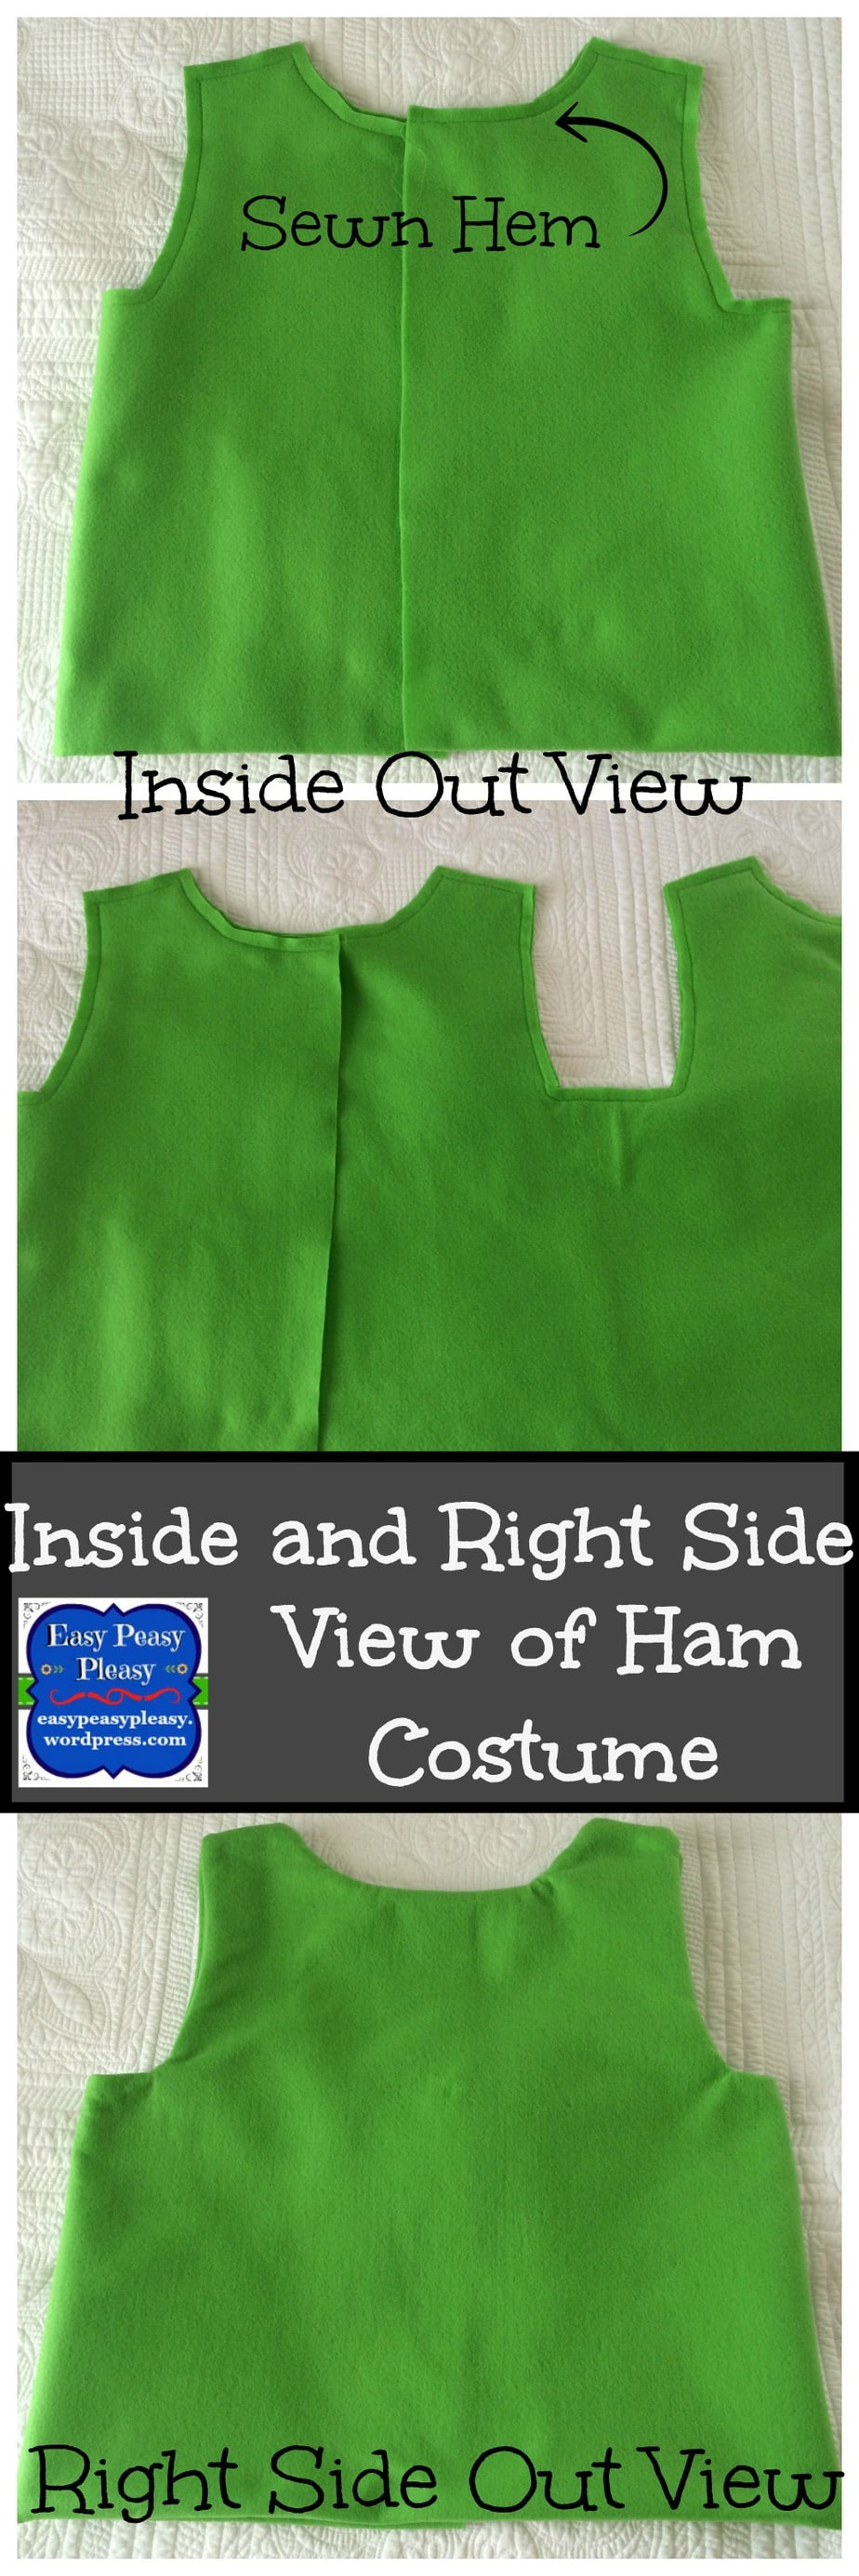 Inside and Right Side View of Dr. Seuss Sam I Am Green Eggs and Ham Costume collage